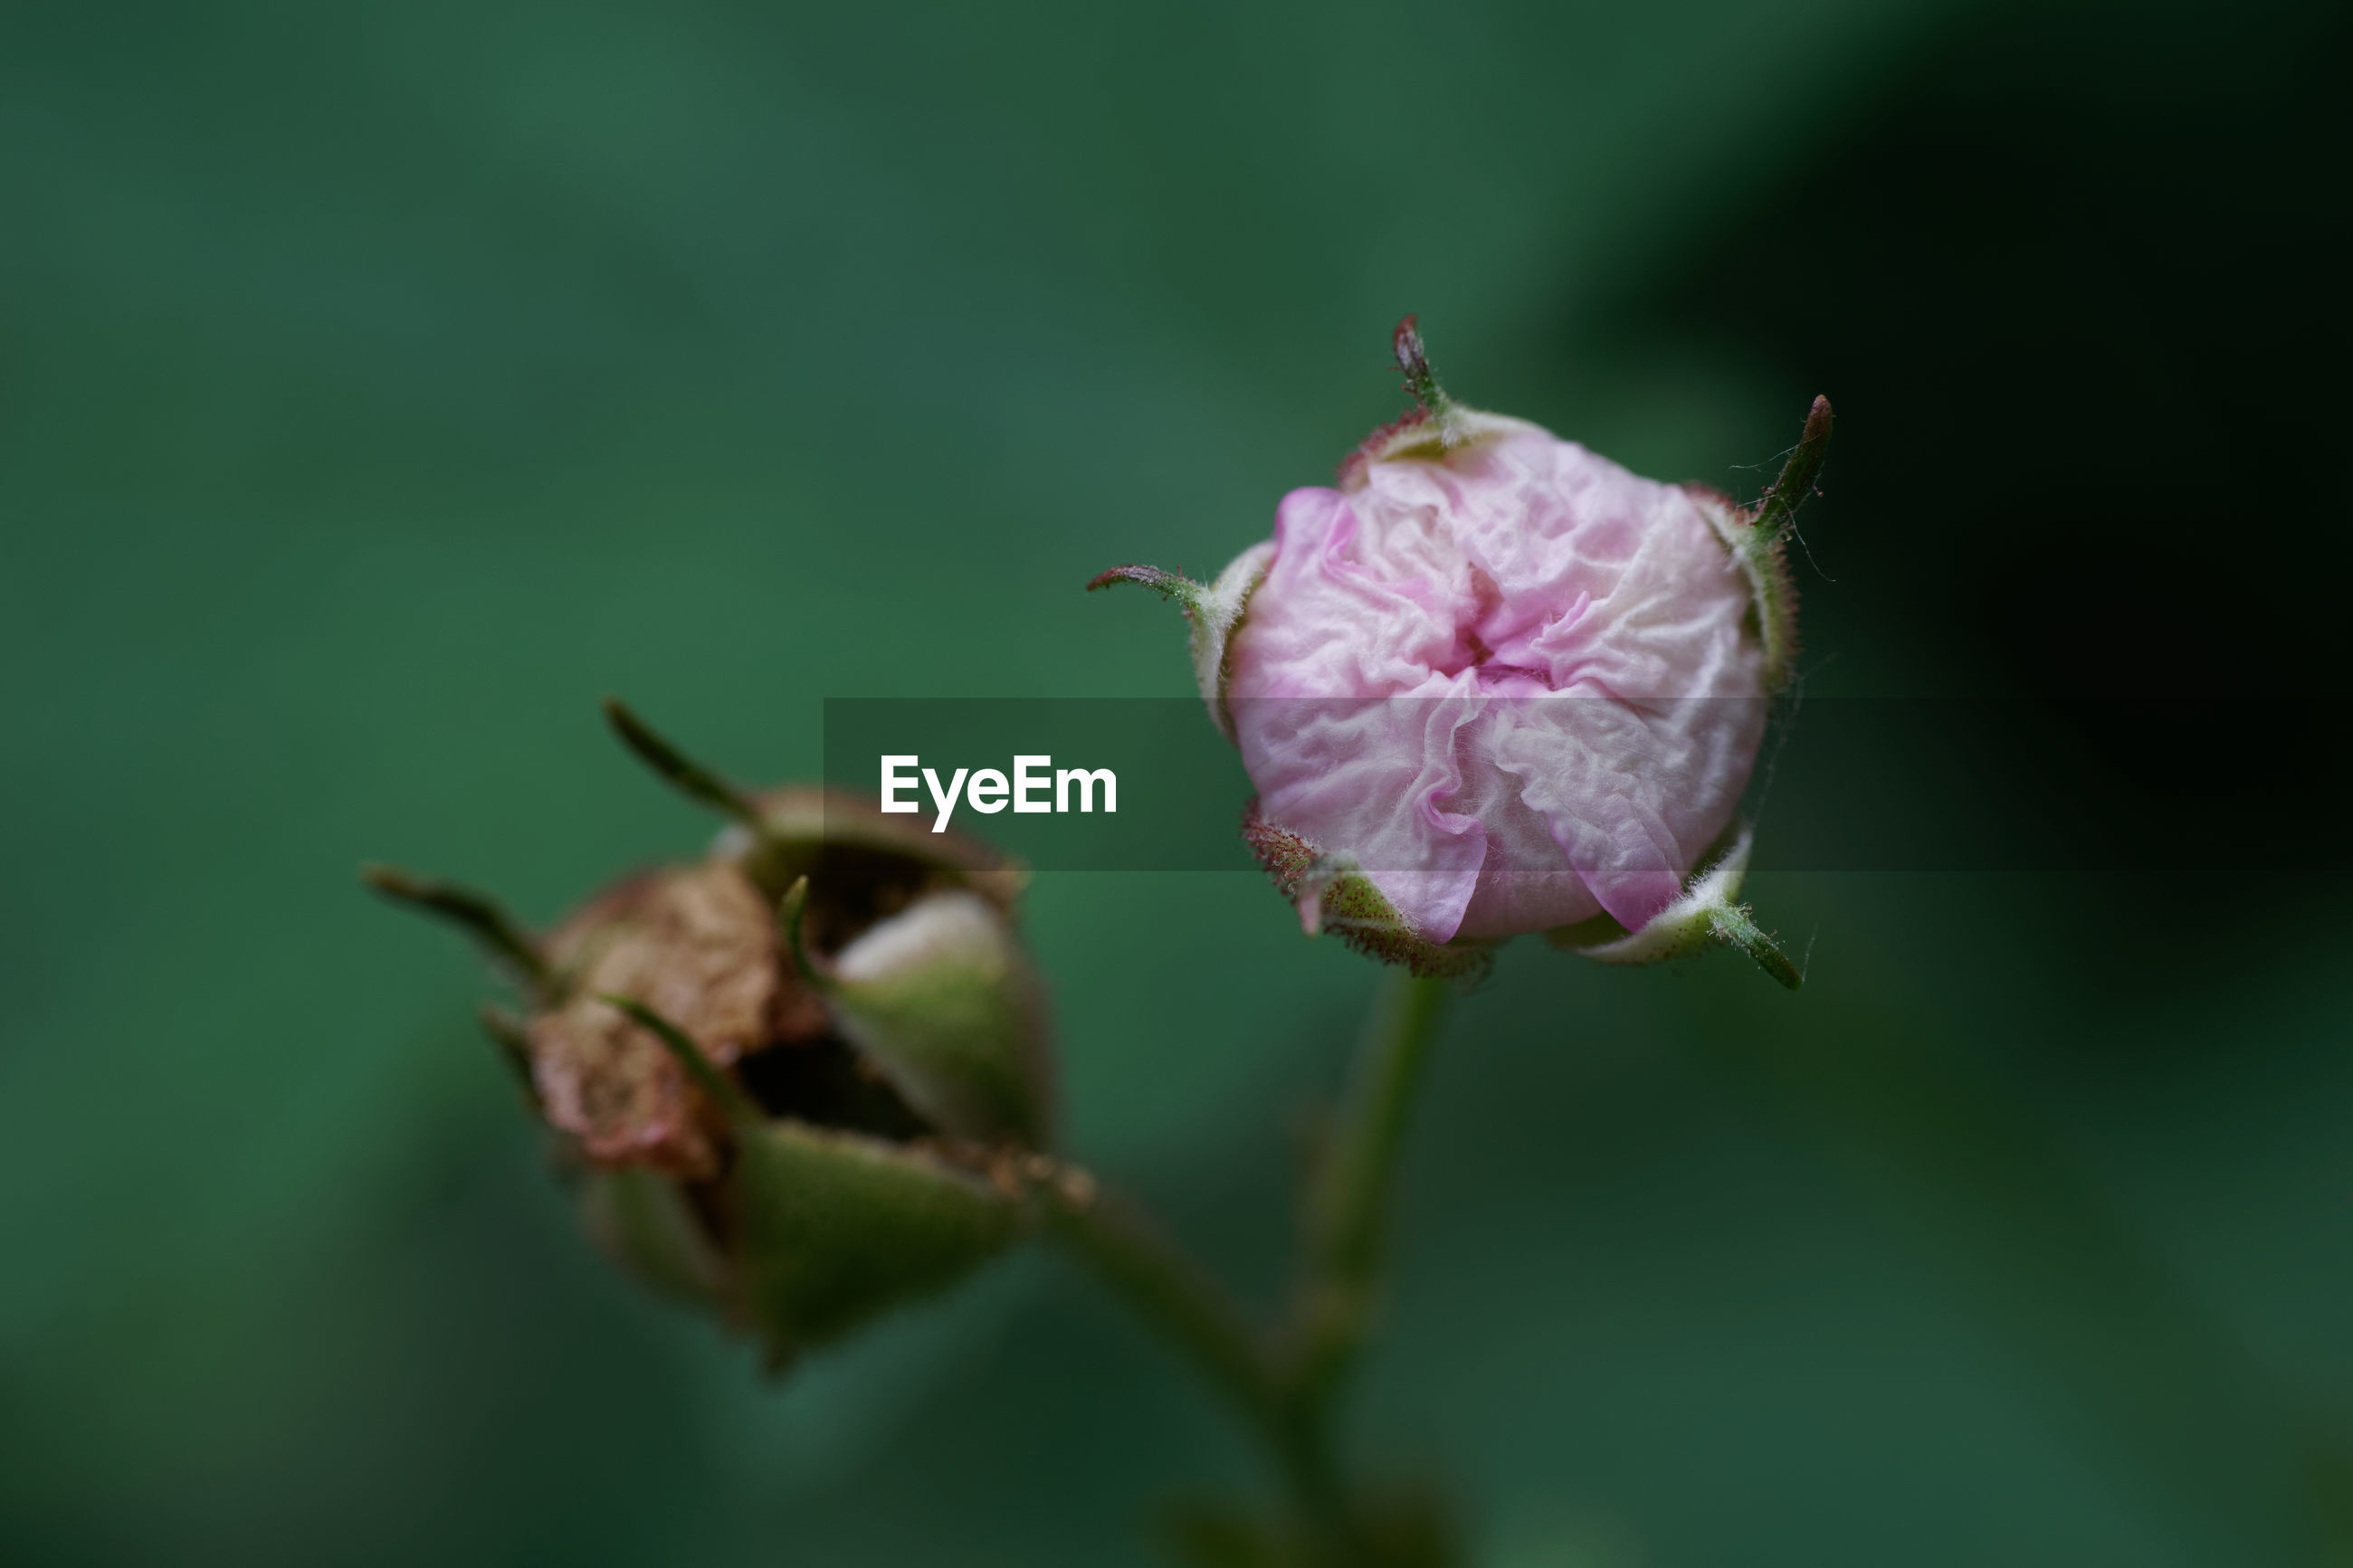 CLOSE-UP OF WILTED PINK FLOWER